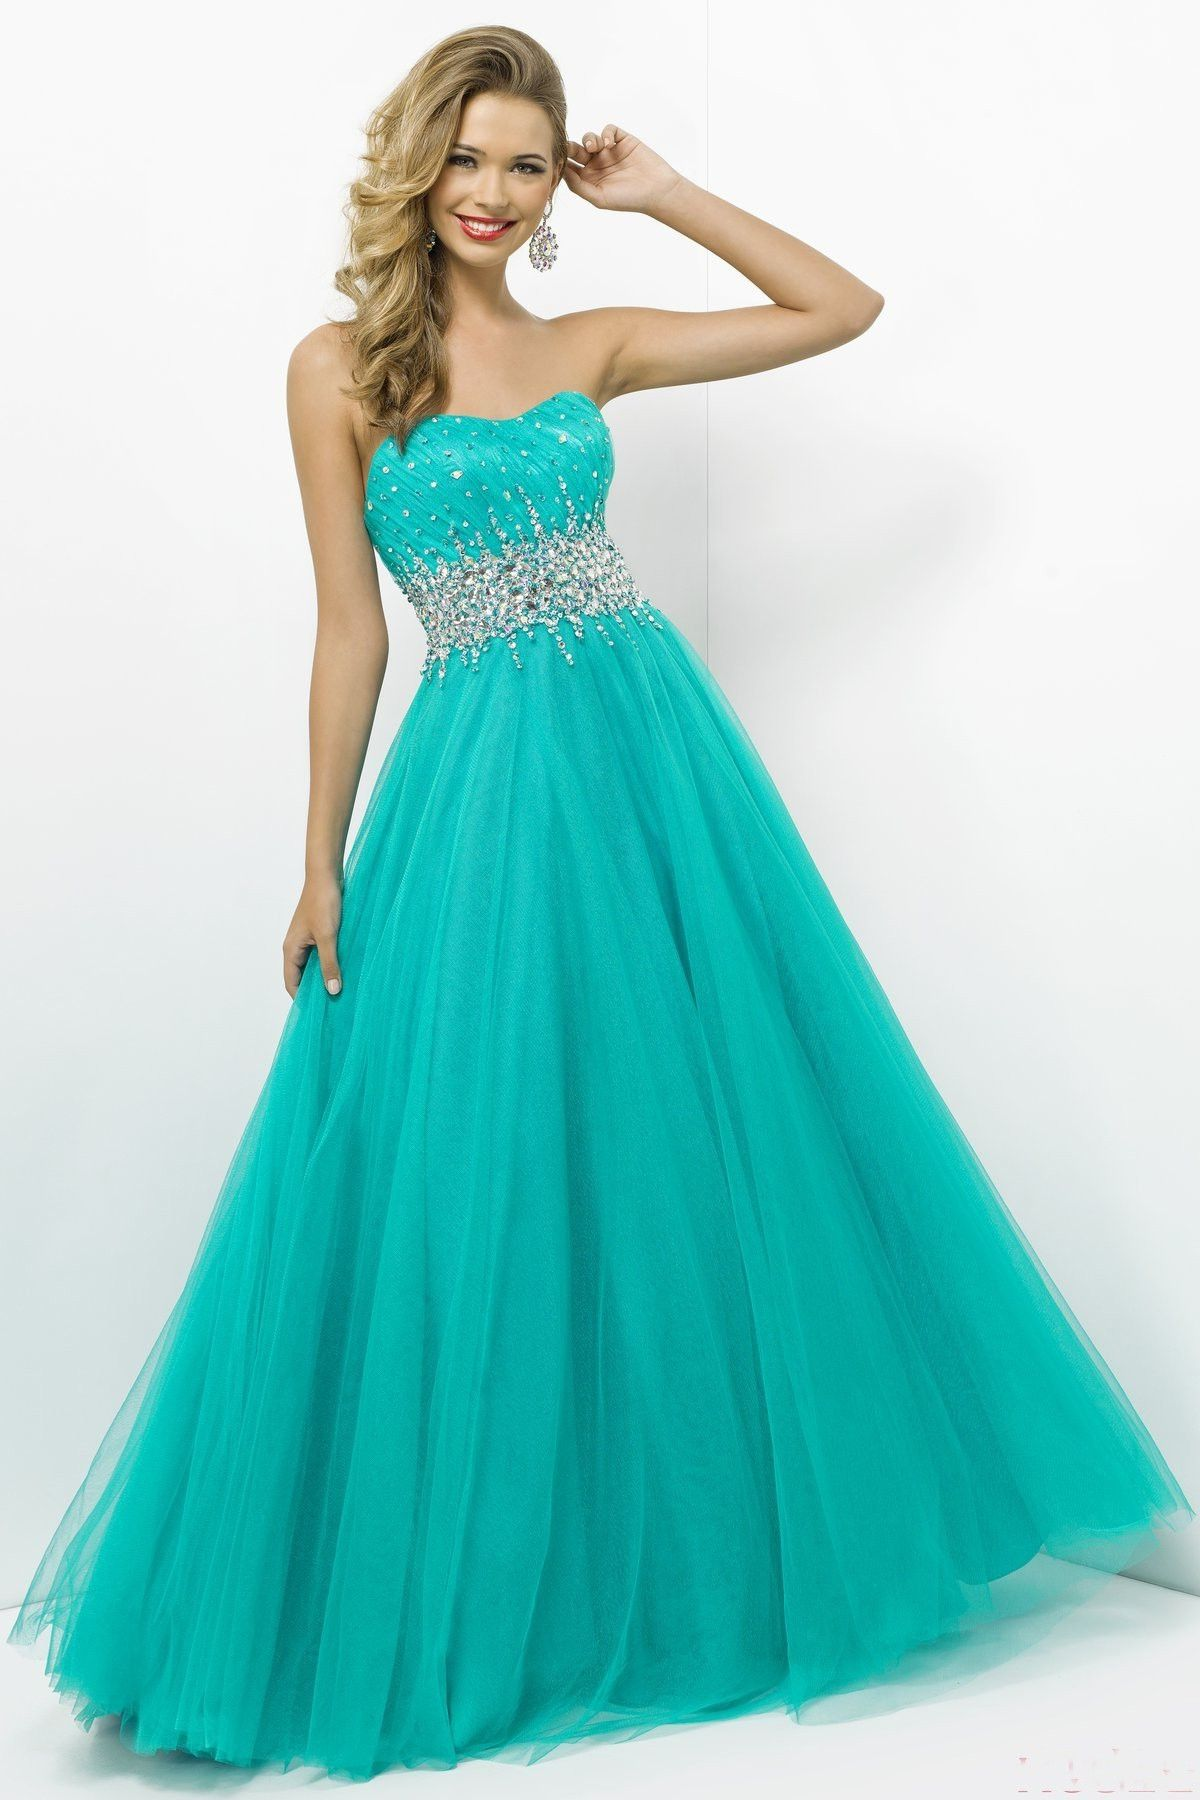 Ball gown prom dresses 2014 - Cute Fashions Windowshoponline Com Short Prom Dresses